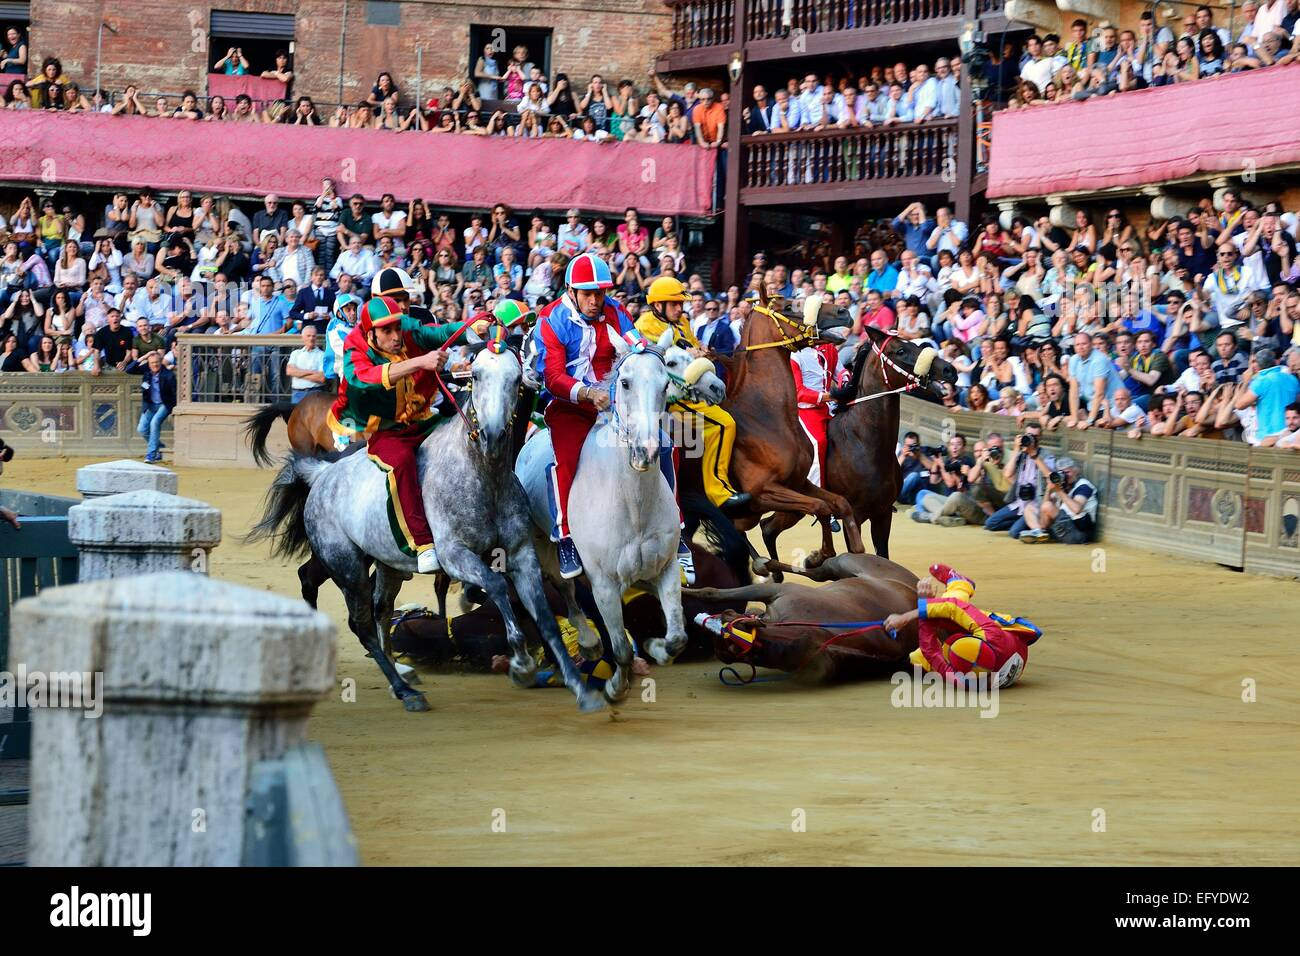 Accident during a training run of the historical horse race Palio di Siena, Piazza del Campo, Siena, Tuscany, Italy - Stock Image